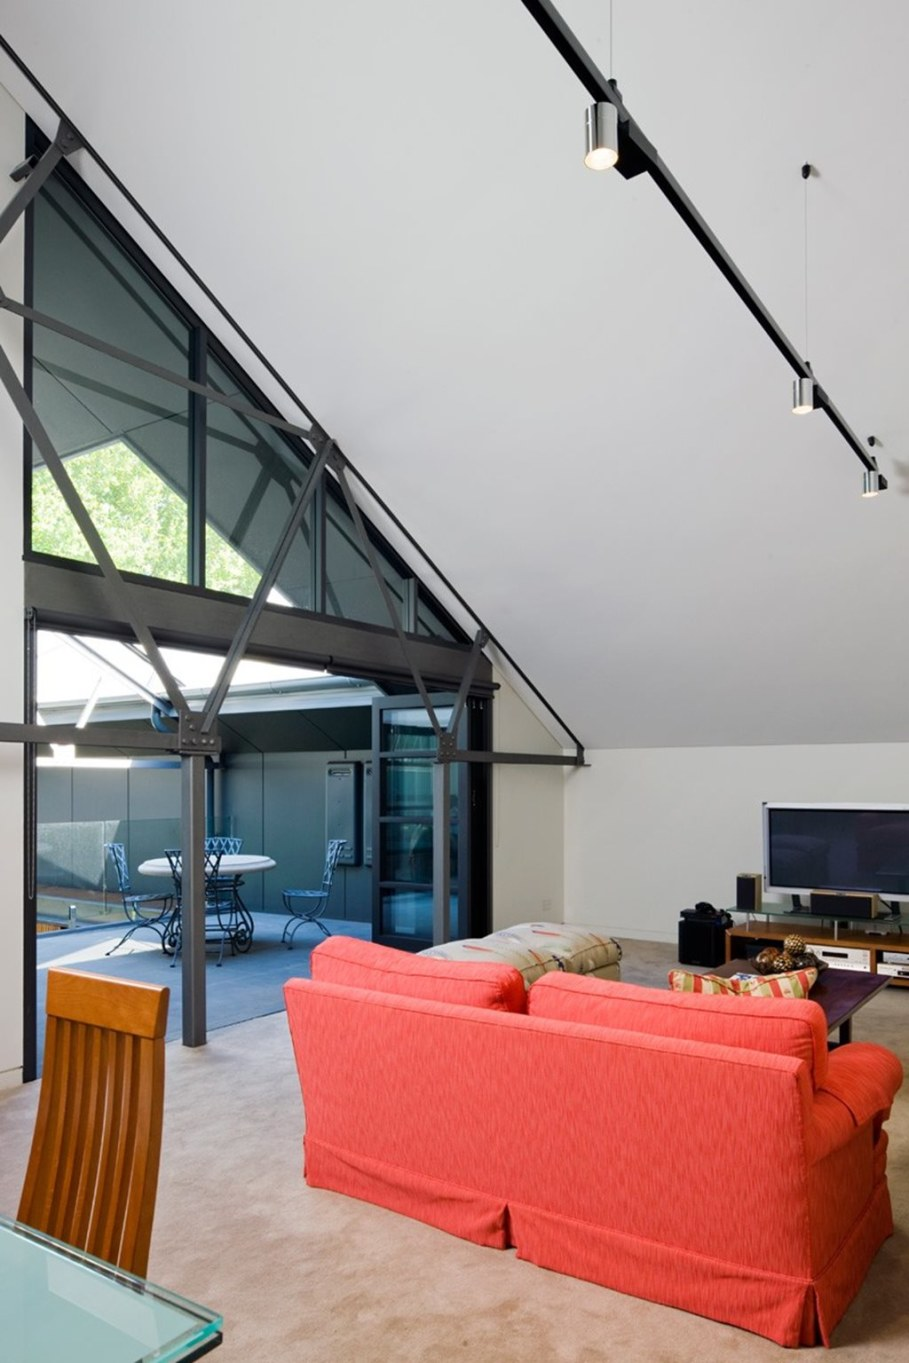 Grand loft house in Australia by Corben Architects studio - Living room 6